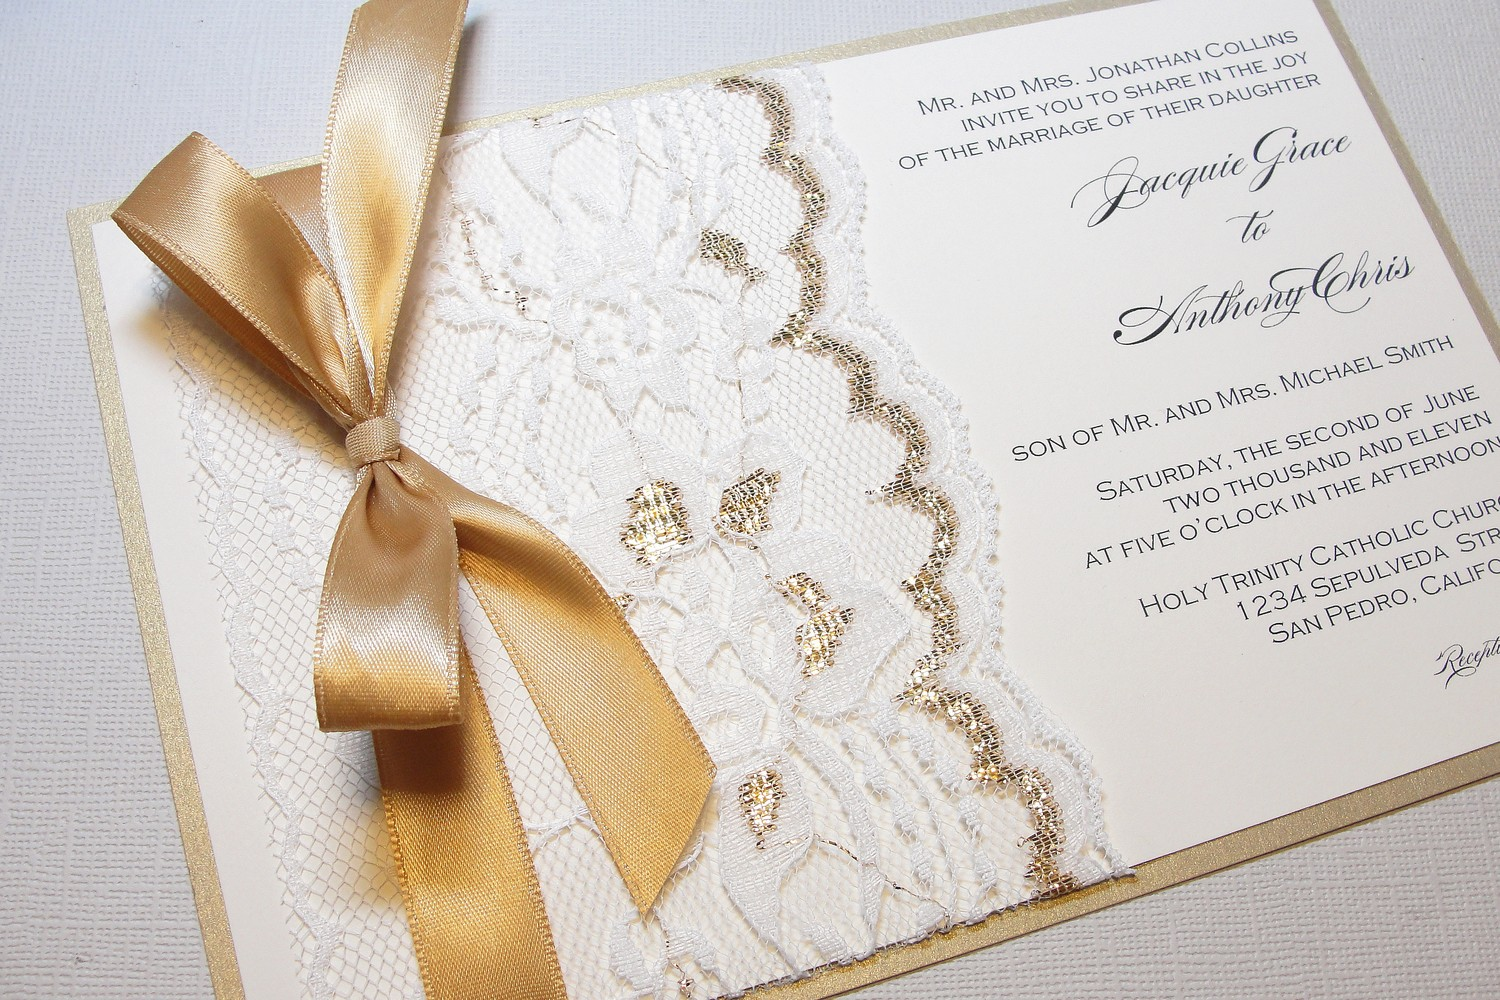 Wedding Invitation Lace: Happiness Is A Mood Not A Destination: Wedding Wednesday